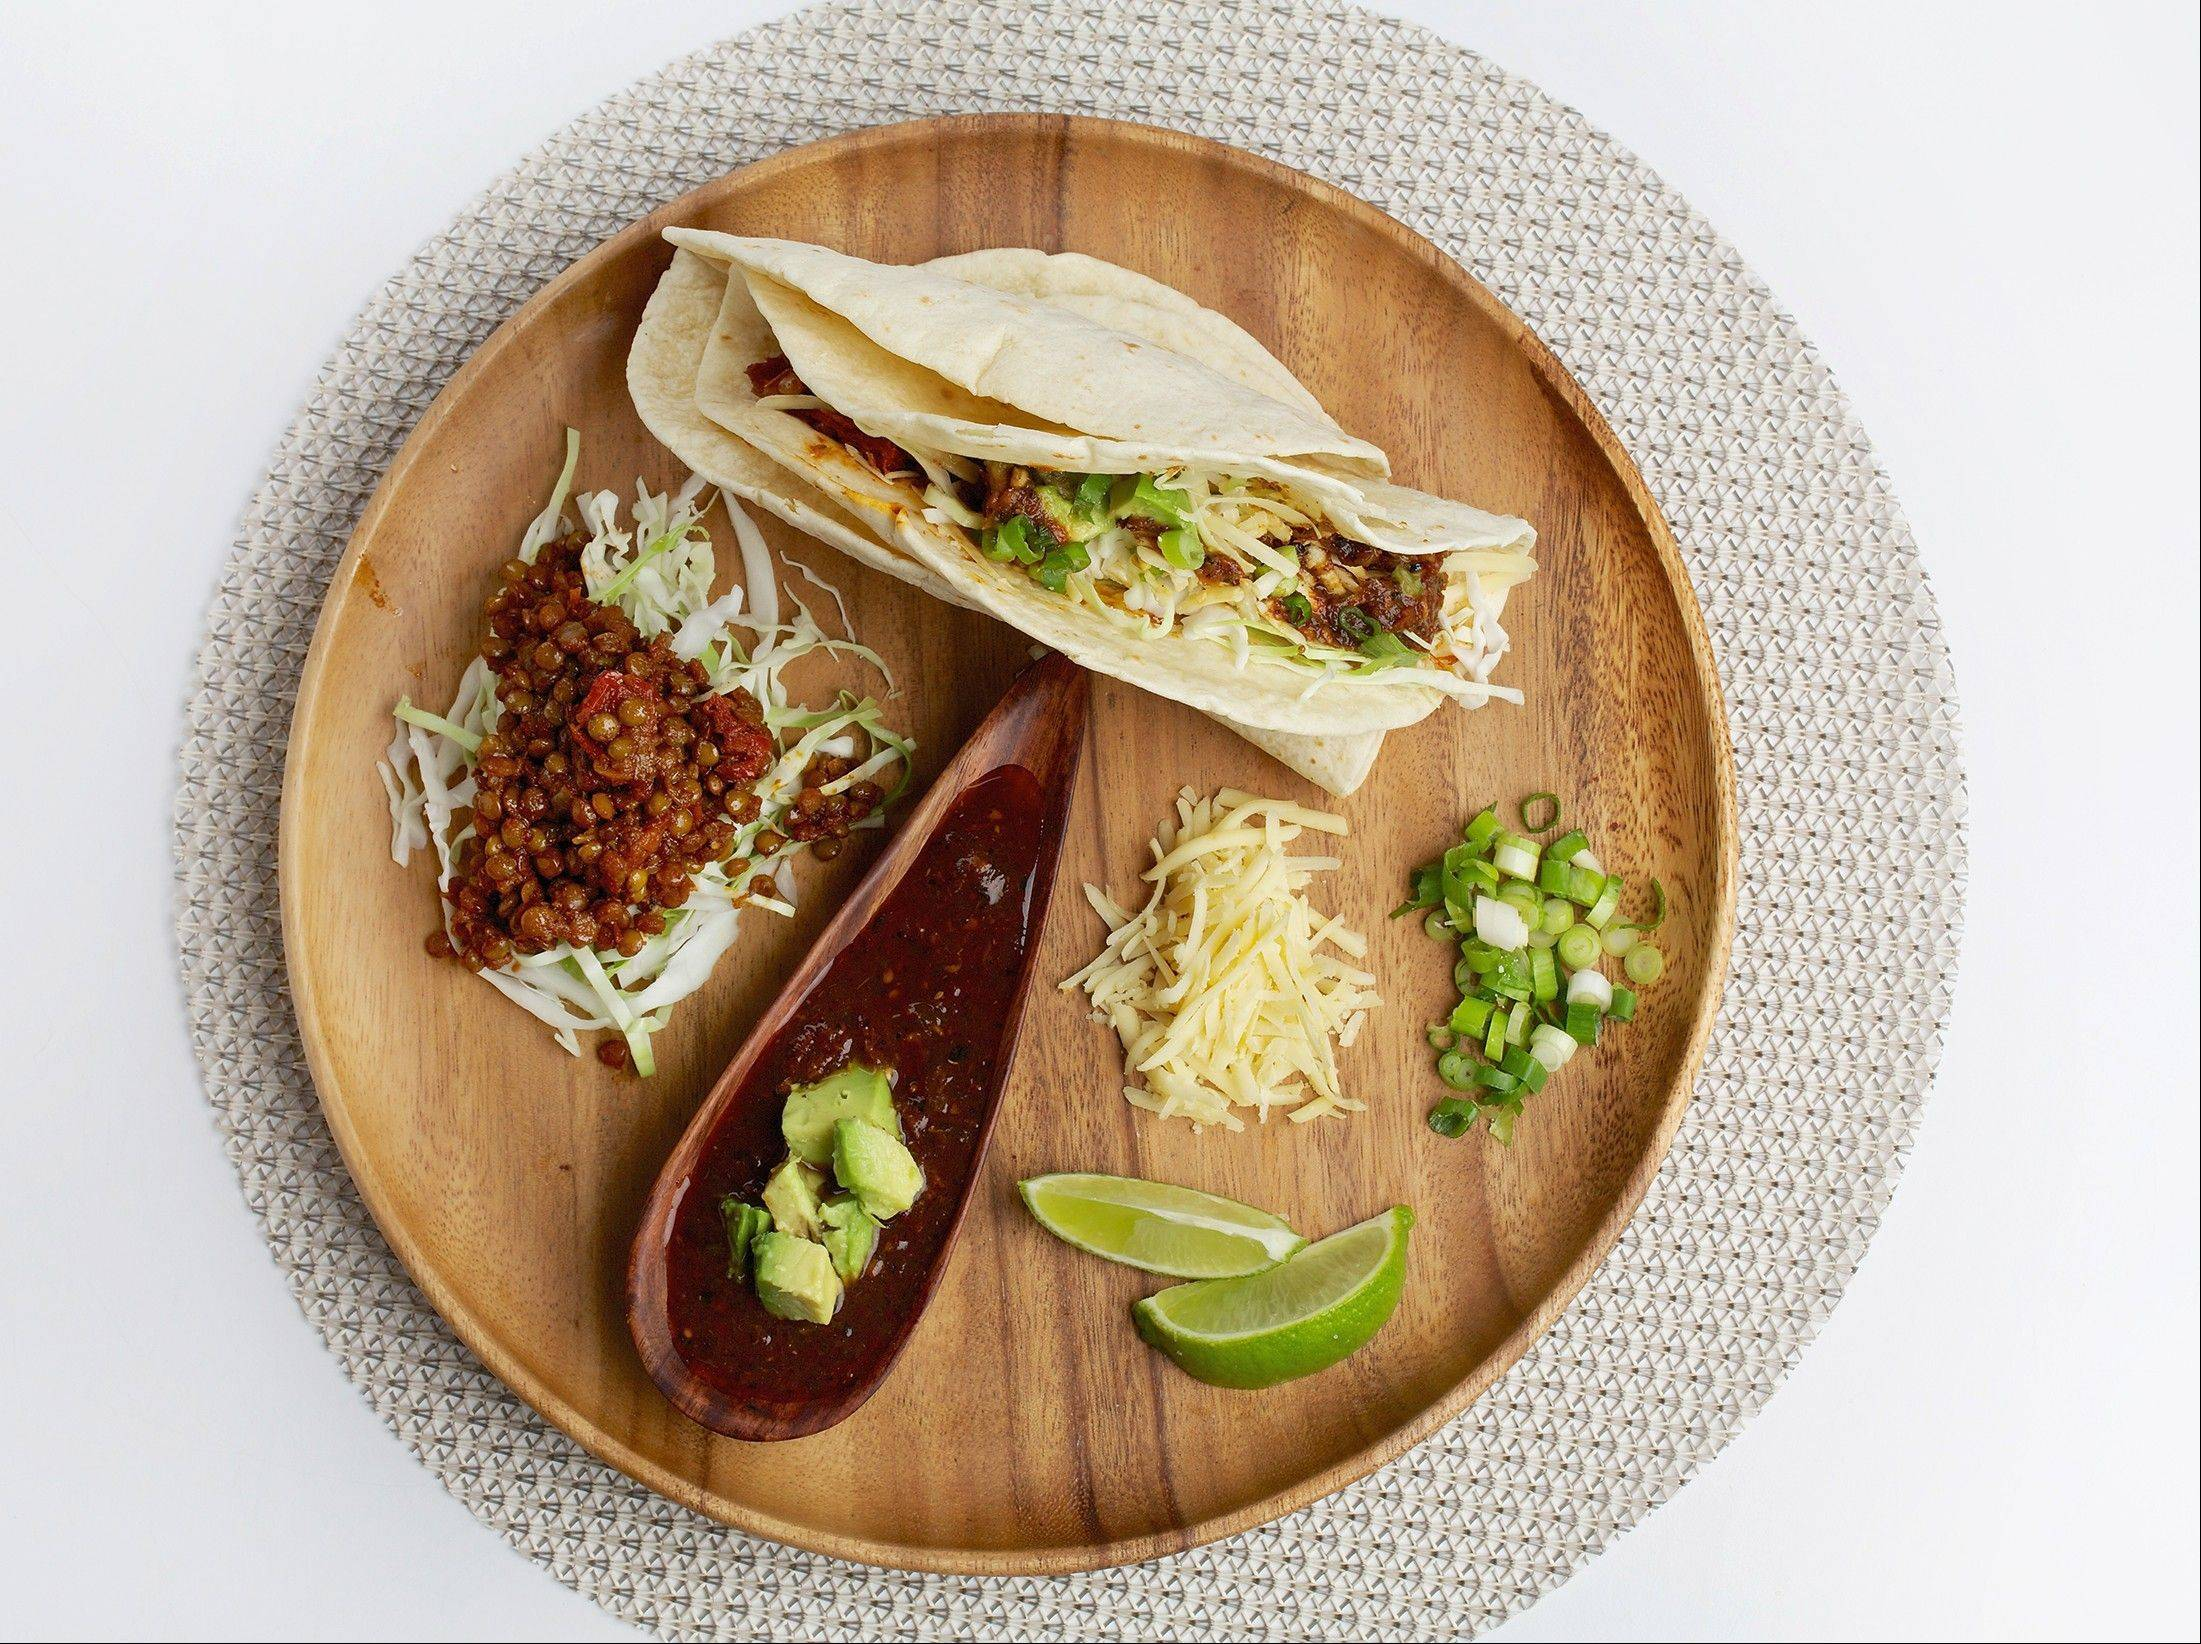 Serve Tacos With Spicy, Smoky Lentils for a vegetarian version of family taco night.